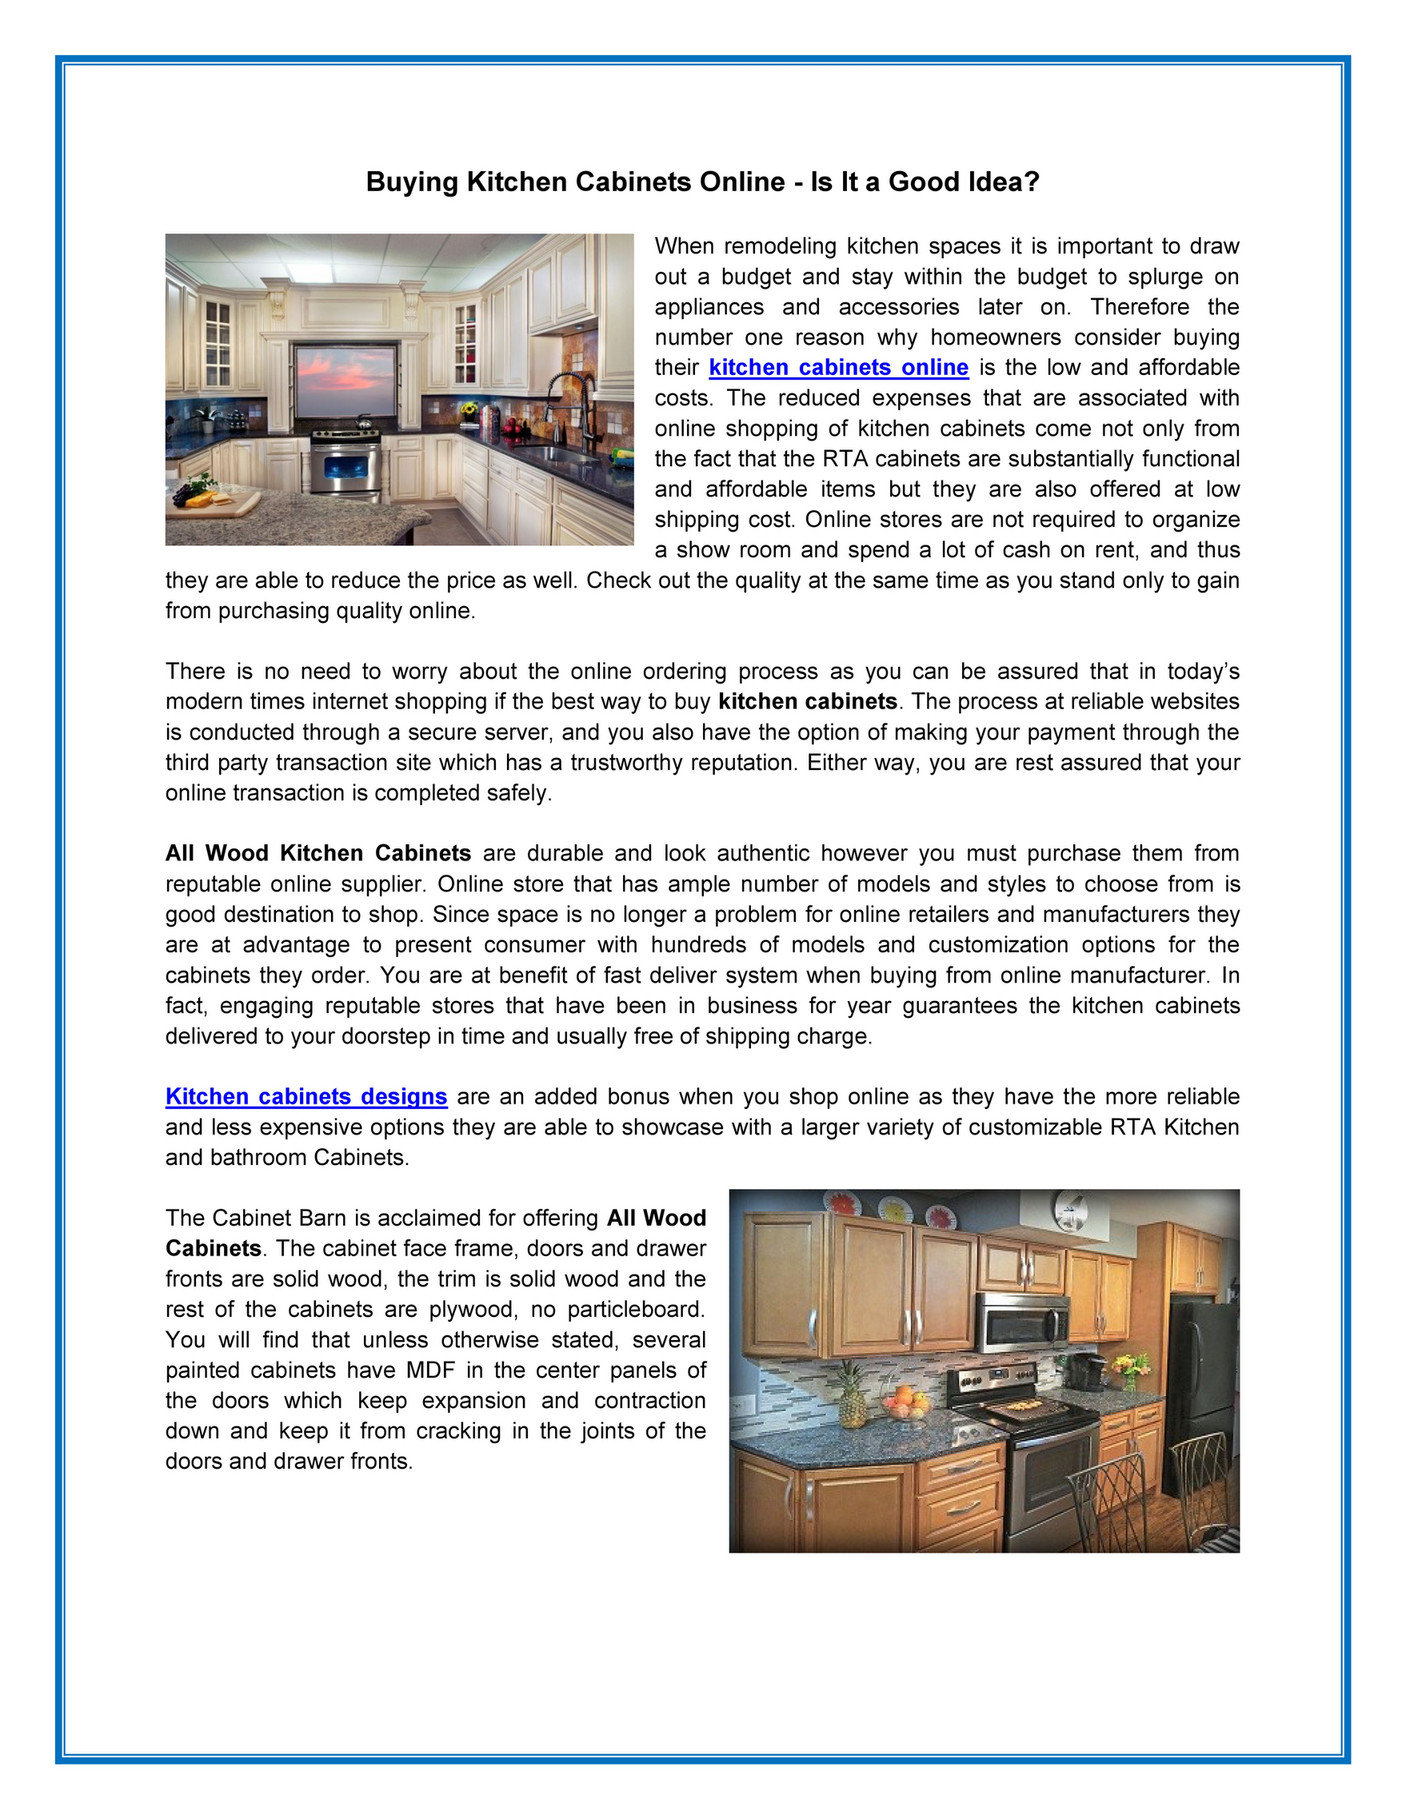 The Cabinet Barn Buying Kitchen Cabinets Online Is It A